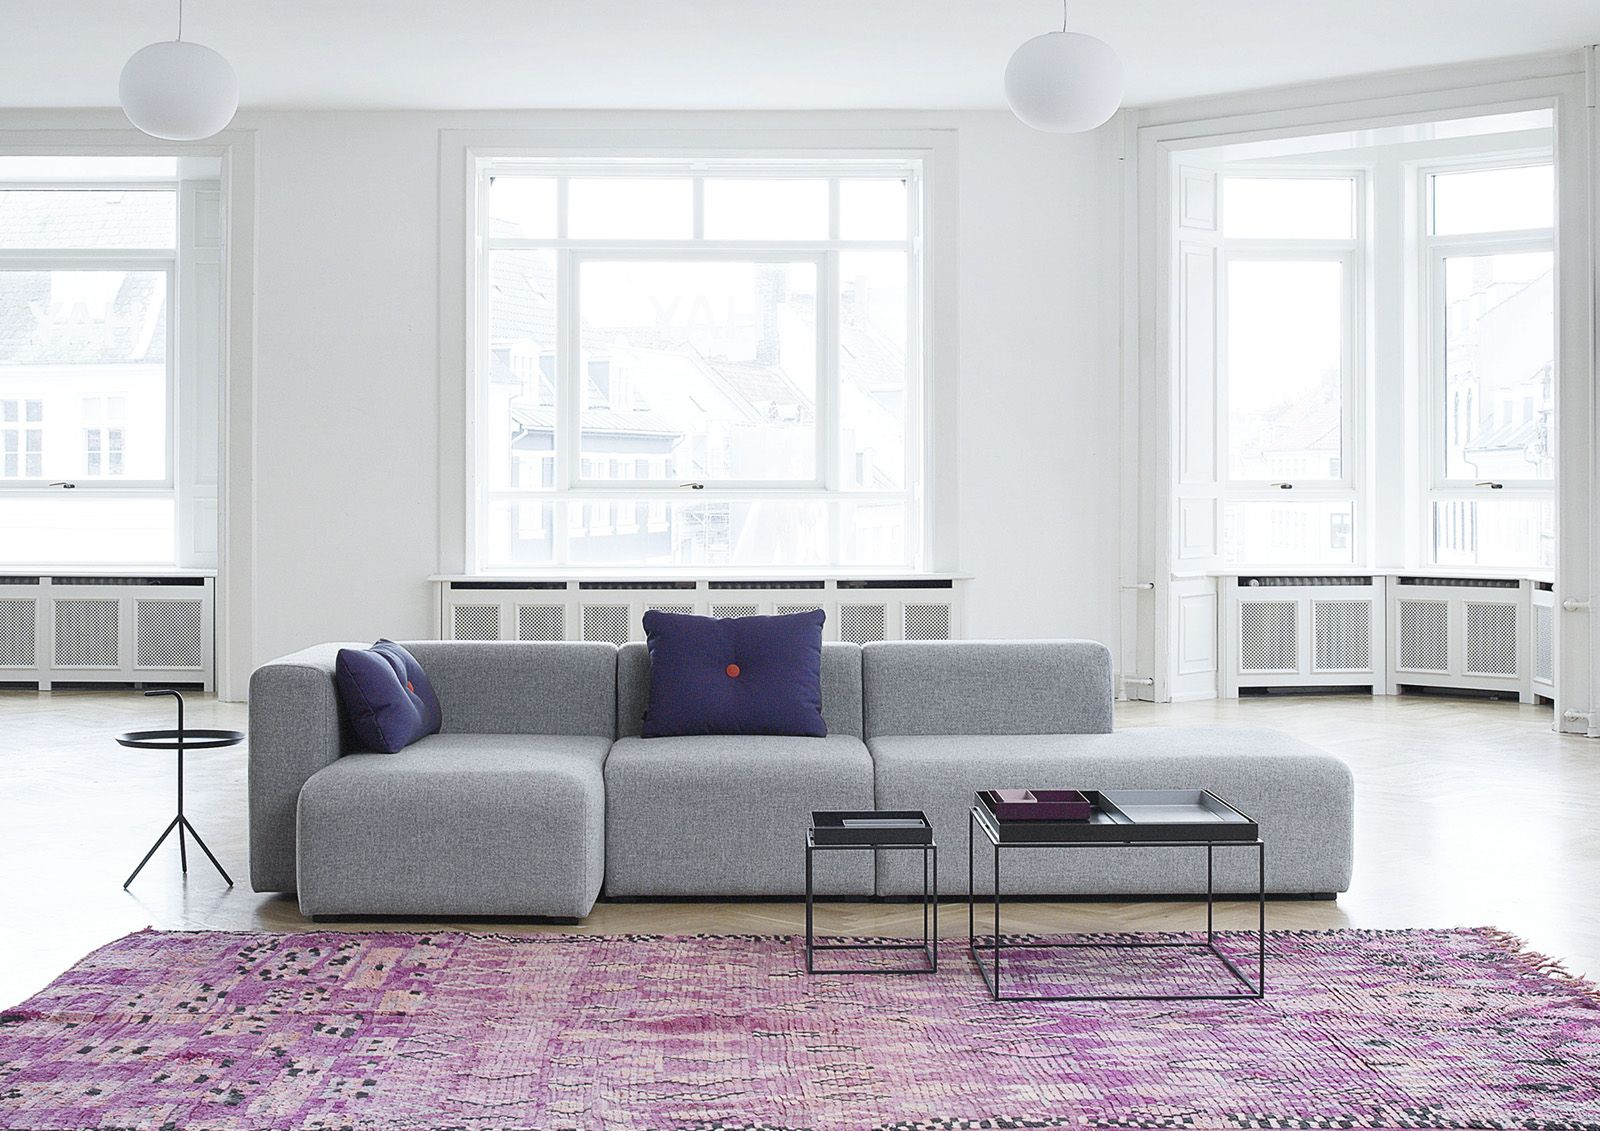 hay mags sofa 3 design likes pinterest wohnzimmer heim und wohnideen. Black Bedroom Furniture Sets. Home Design Ideas